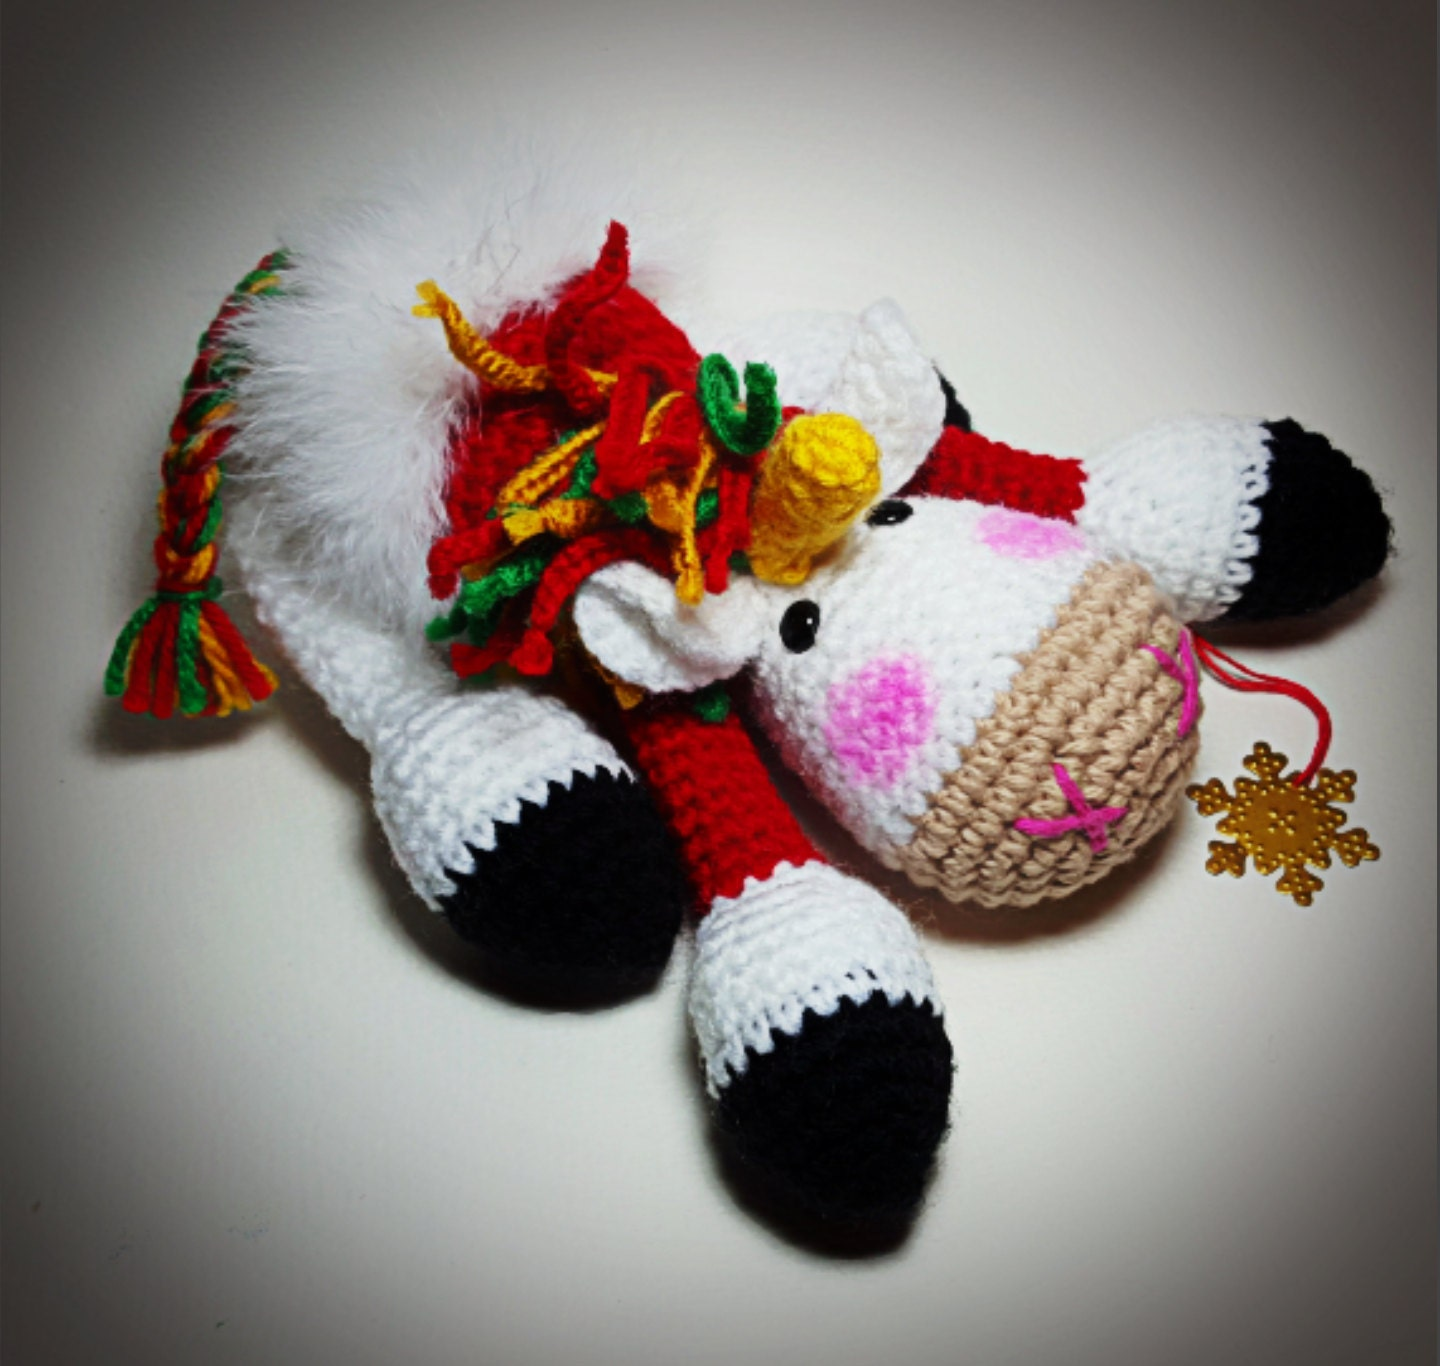 Unicorn Amigurumi Yarn Yard : Amigurumi Unicorn Christmas Plush Toy Fairy World Doll